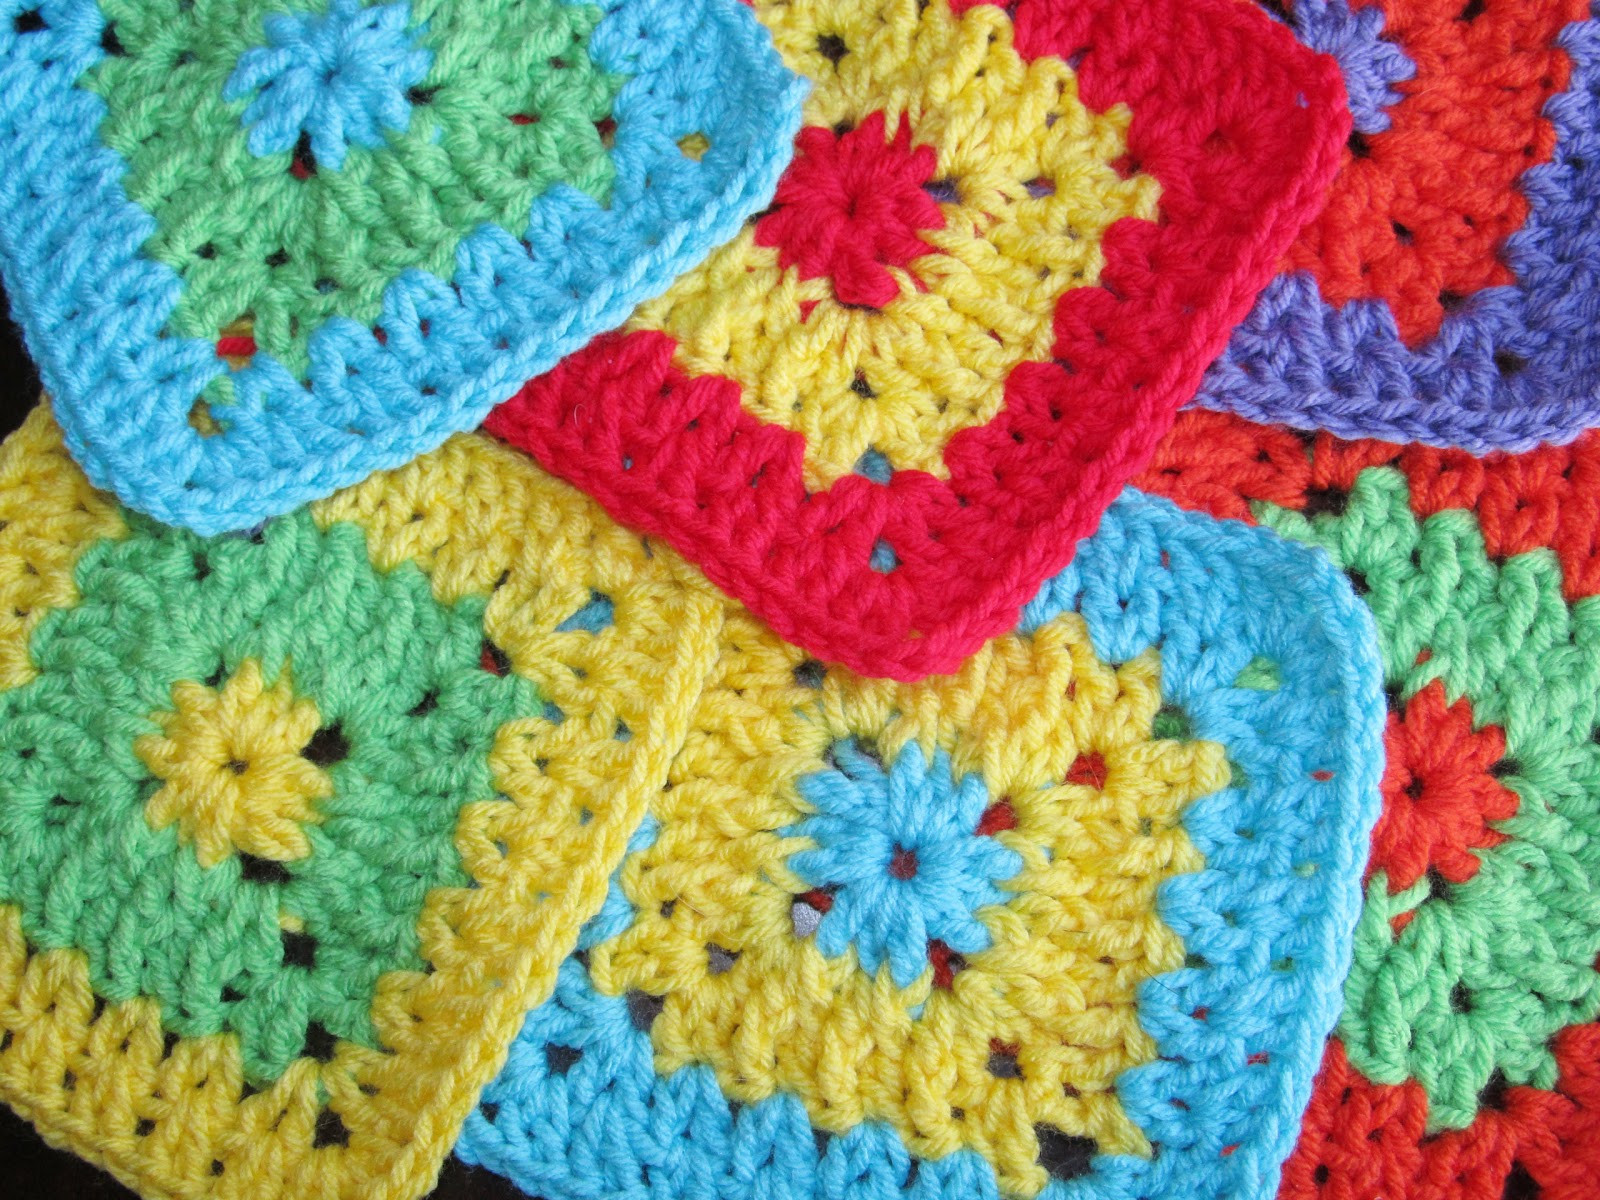 Free Crochet Square Patterns Best Of Smoothfox Crochet and Knit Smoothfox Cool 2b Square Of Delightful 48 Models Free Crochet Square Patterns